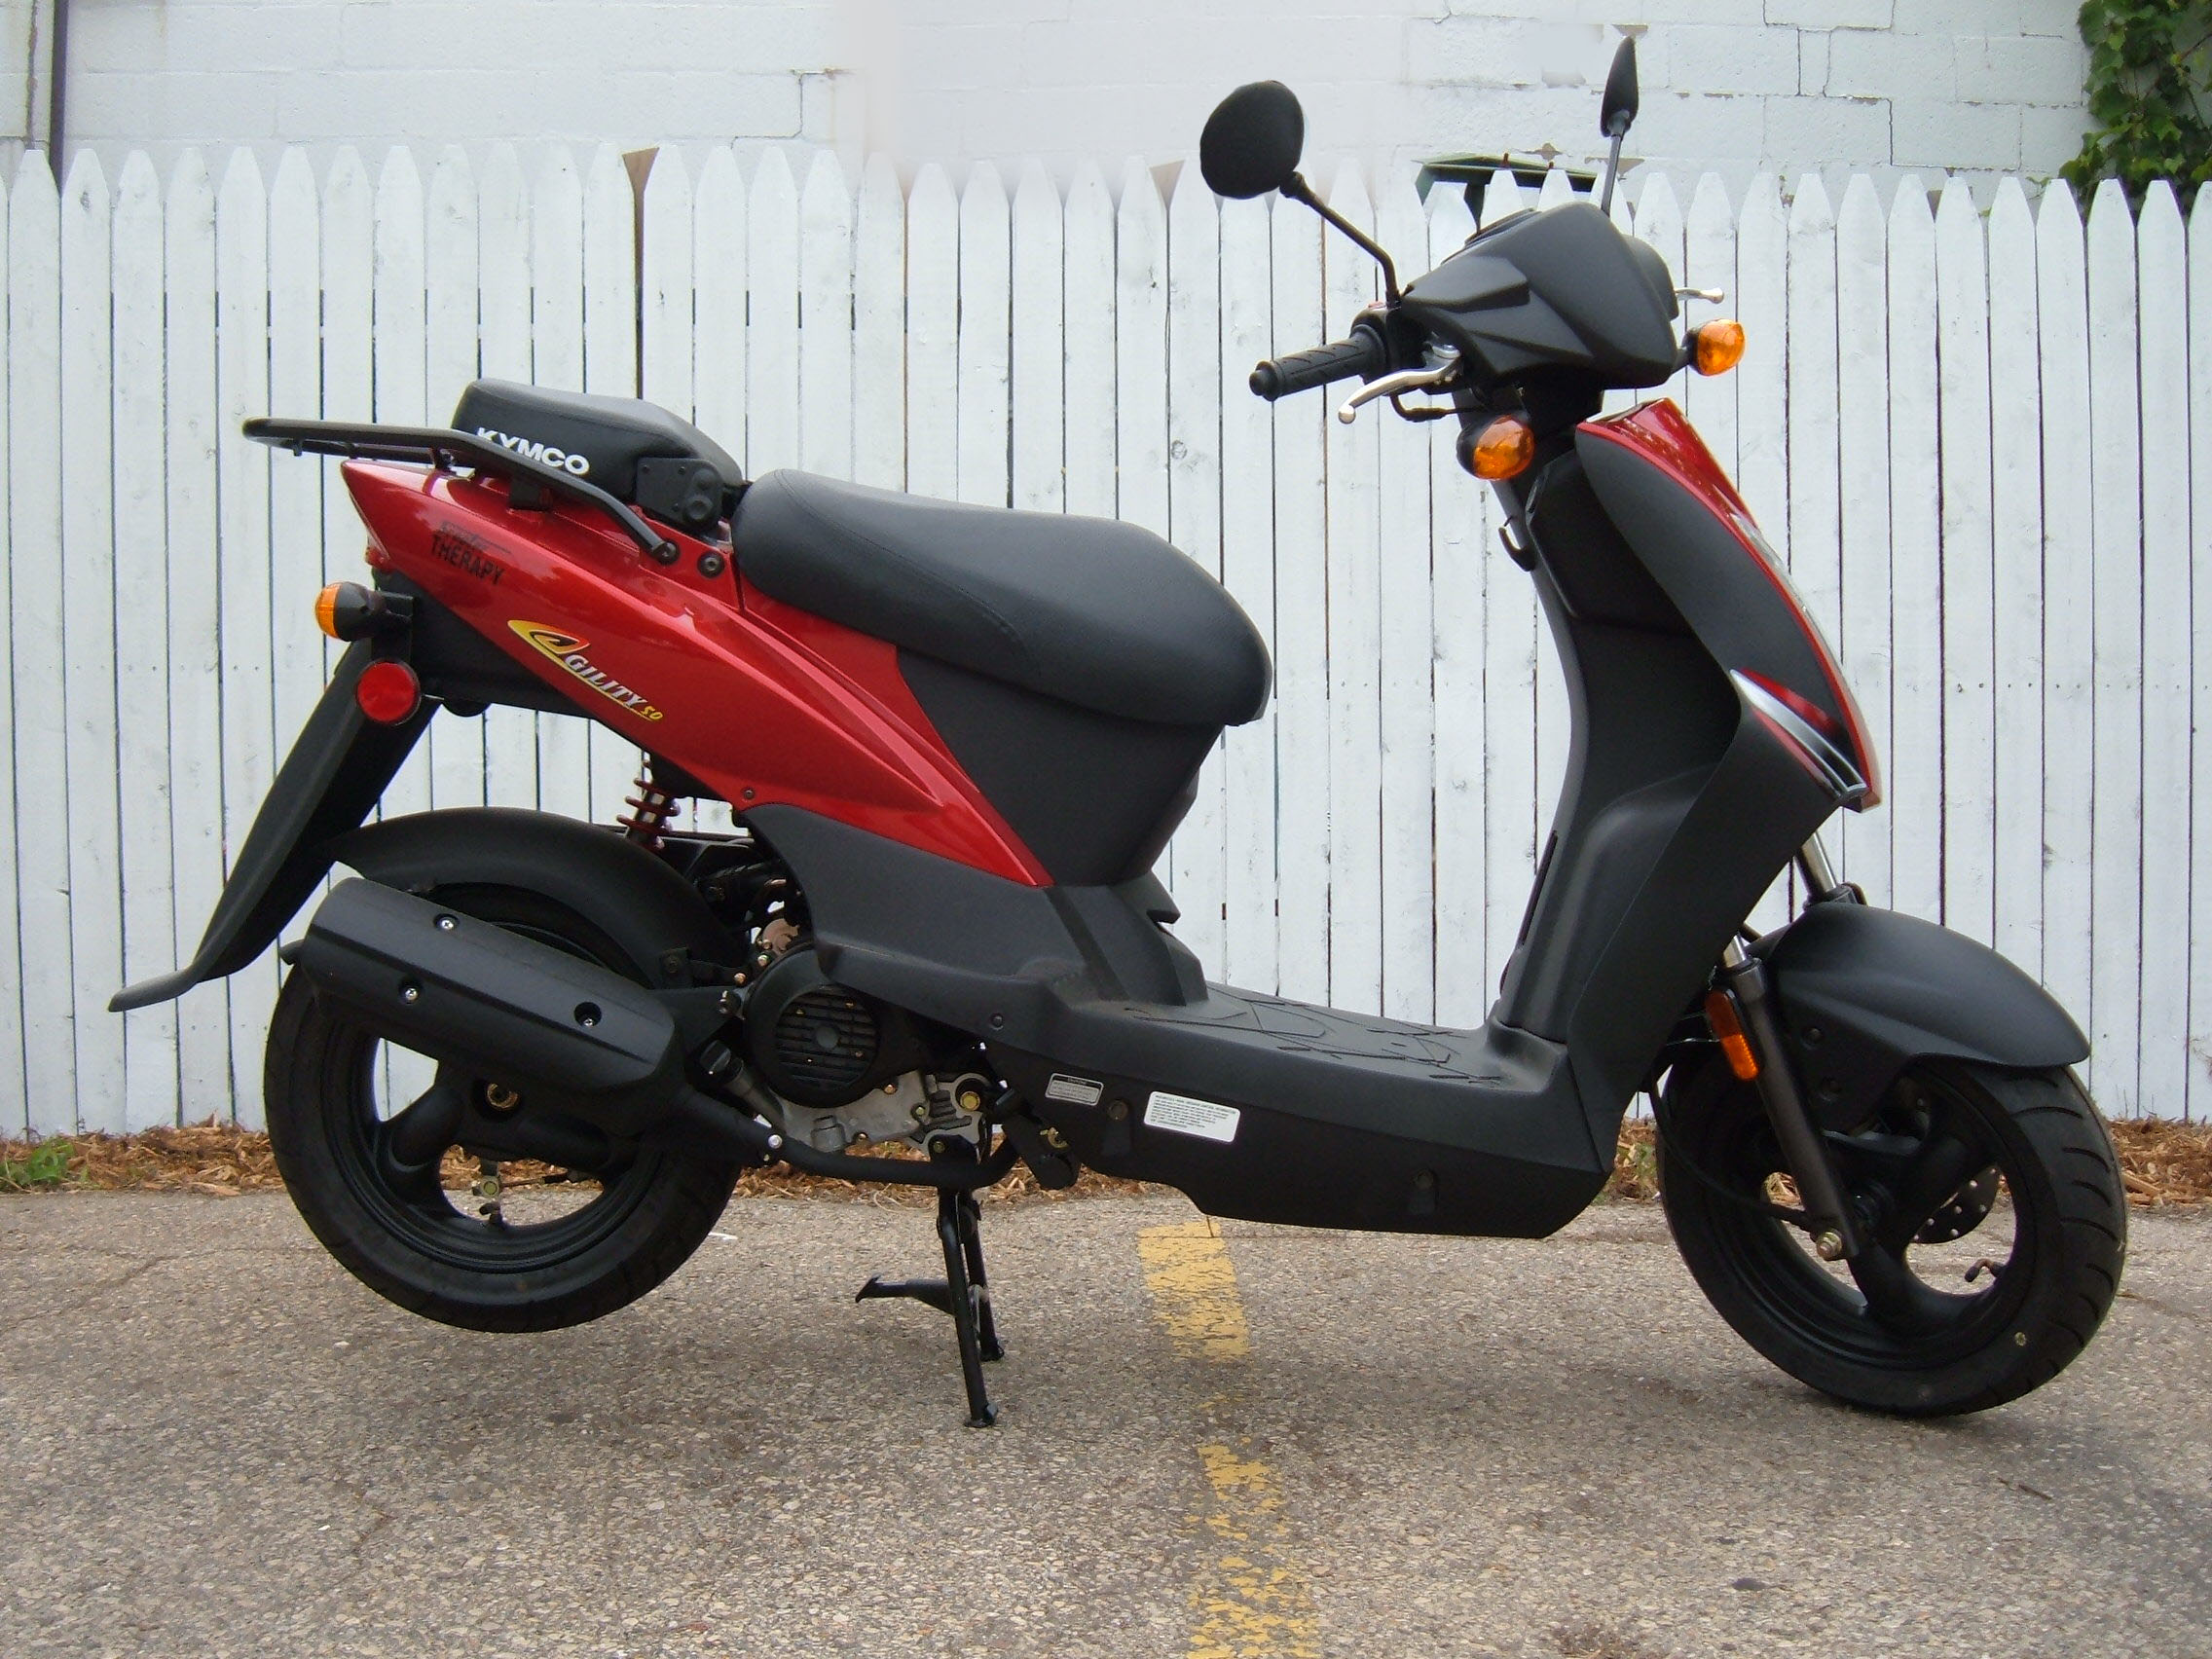 Kymco Agility 50 2006 images #101917